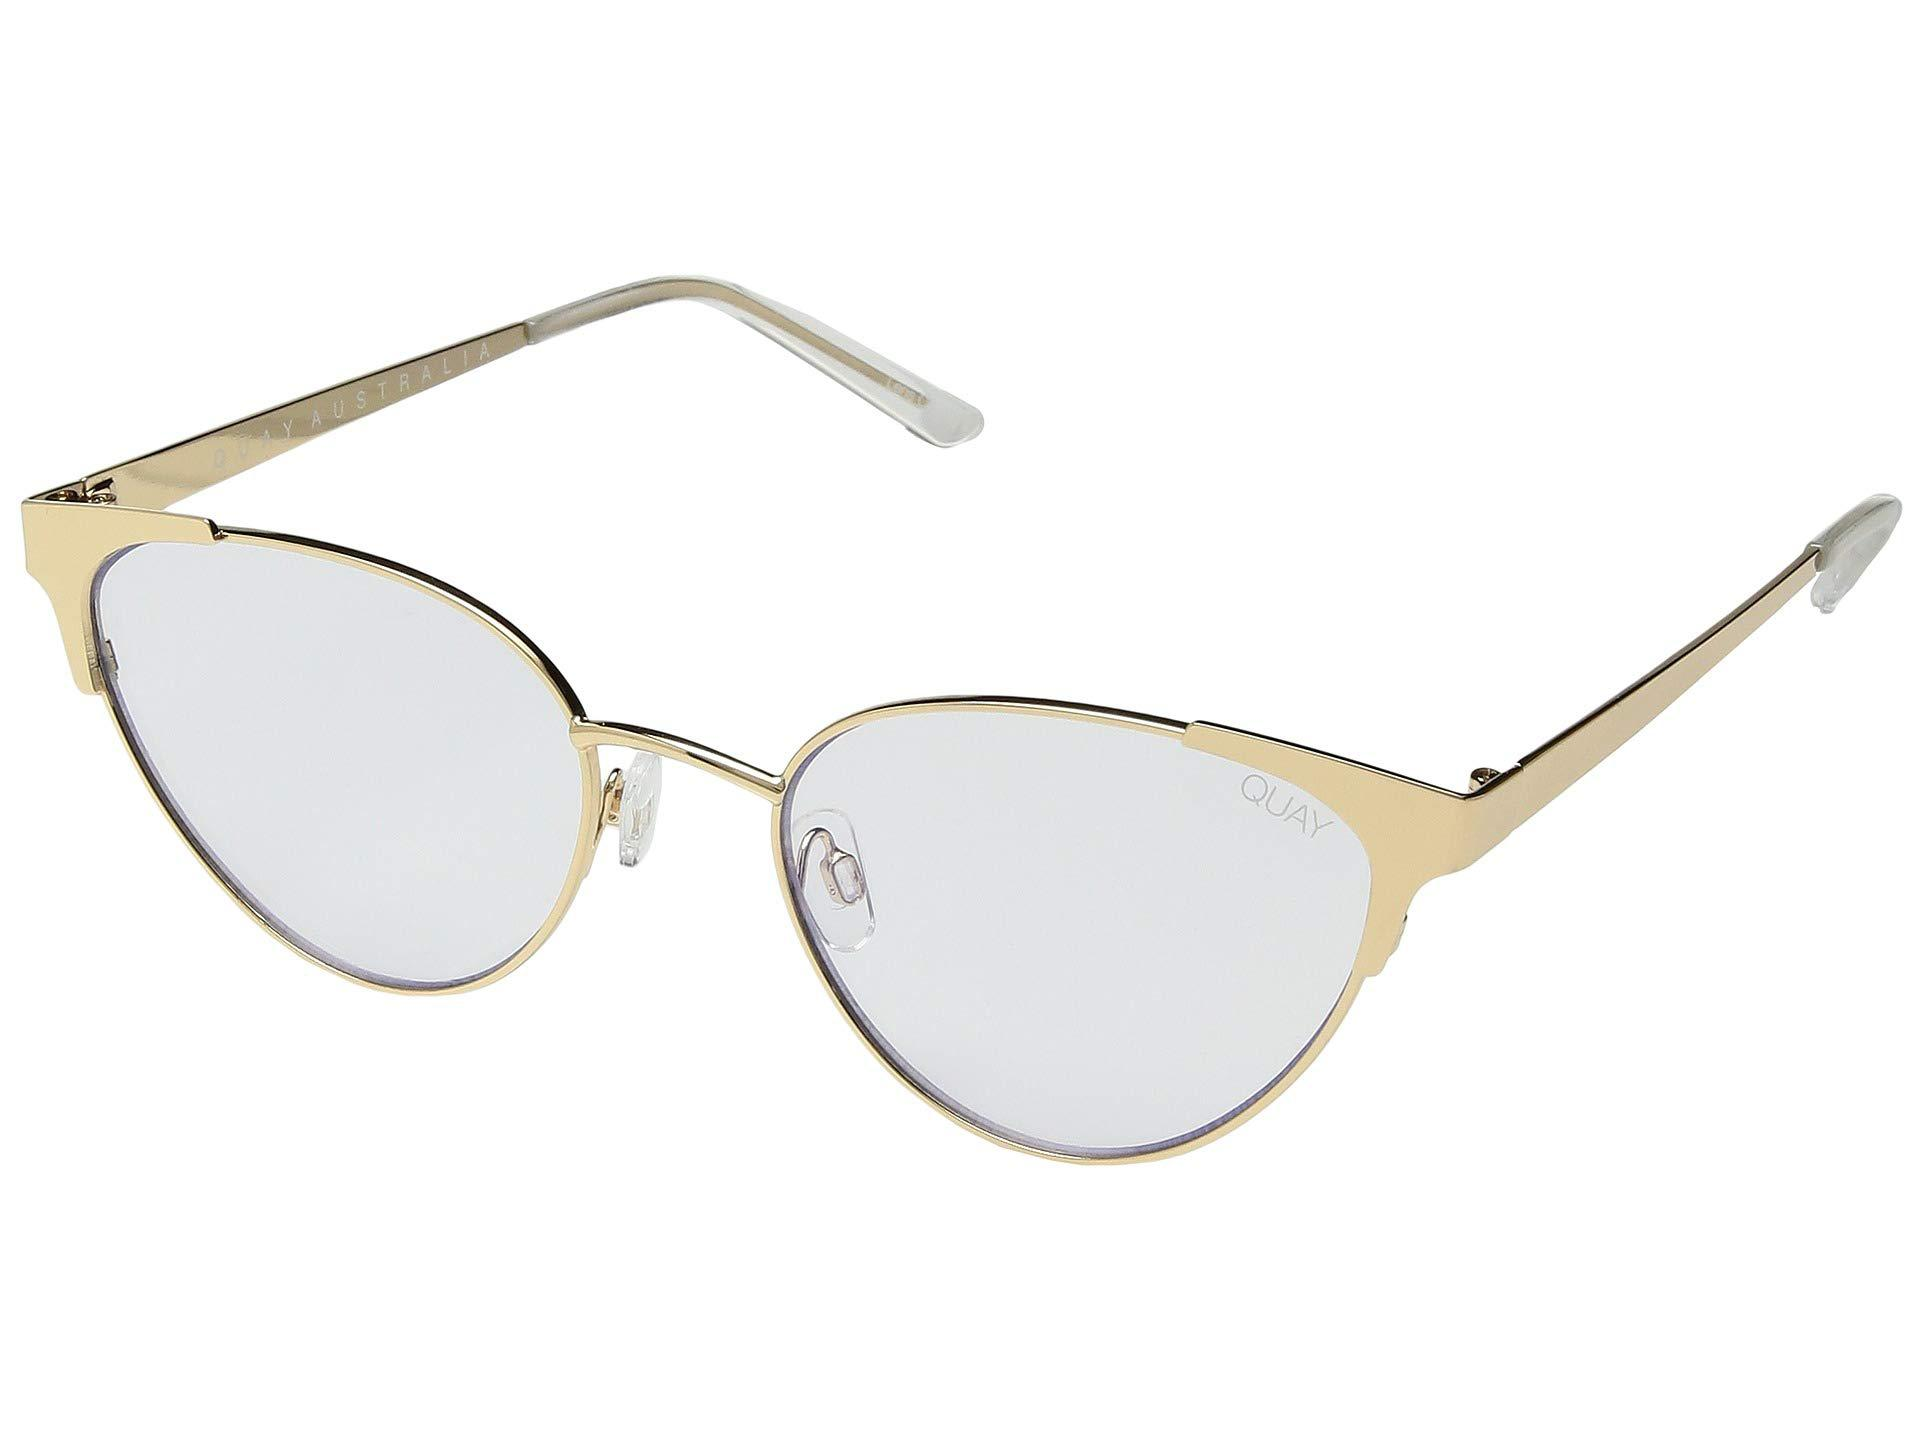 937f40f917ee5 Lyst - Quay Song Bird (gold clear Blue Light) Fashion Sunglasses in ...